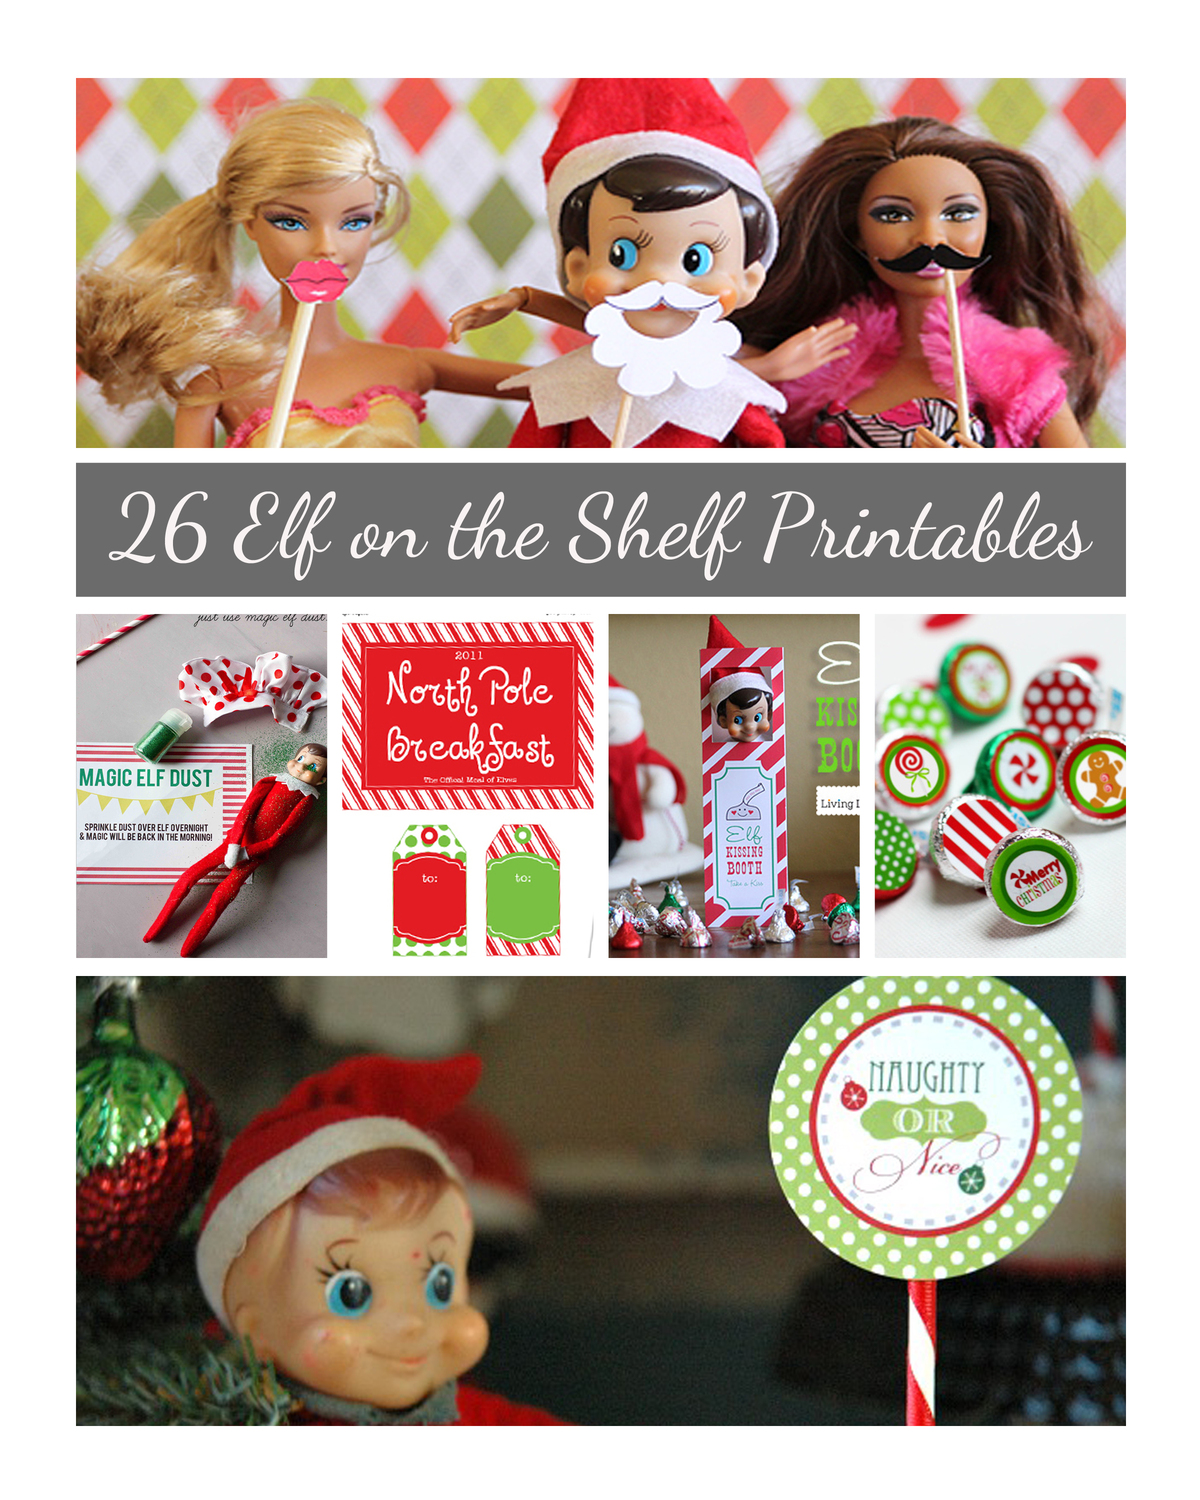 26 Elf on the Shelf Printables